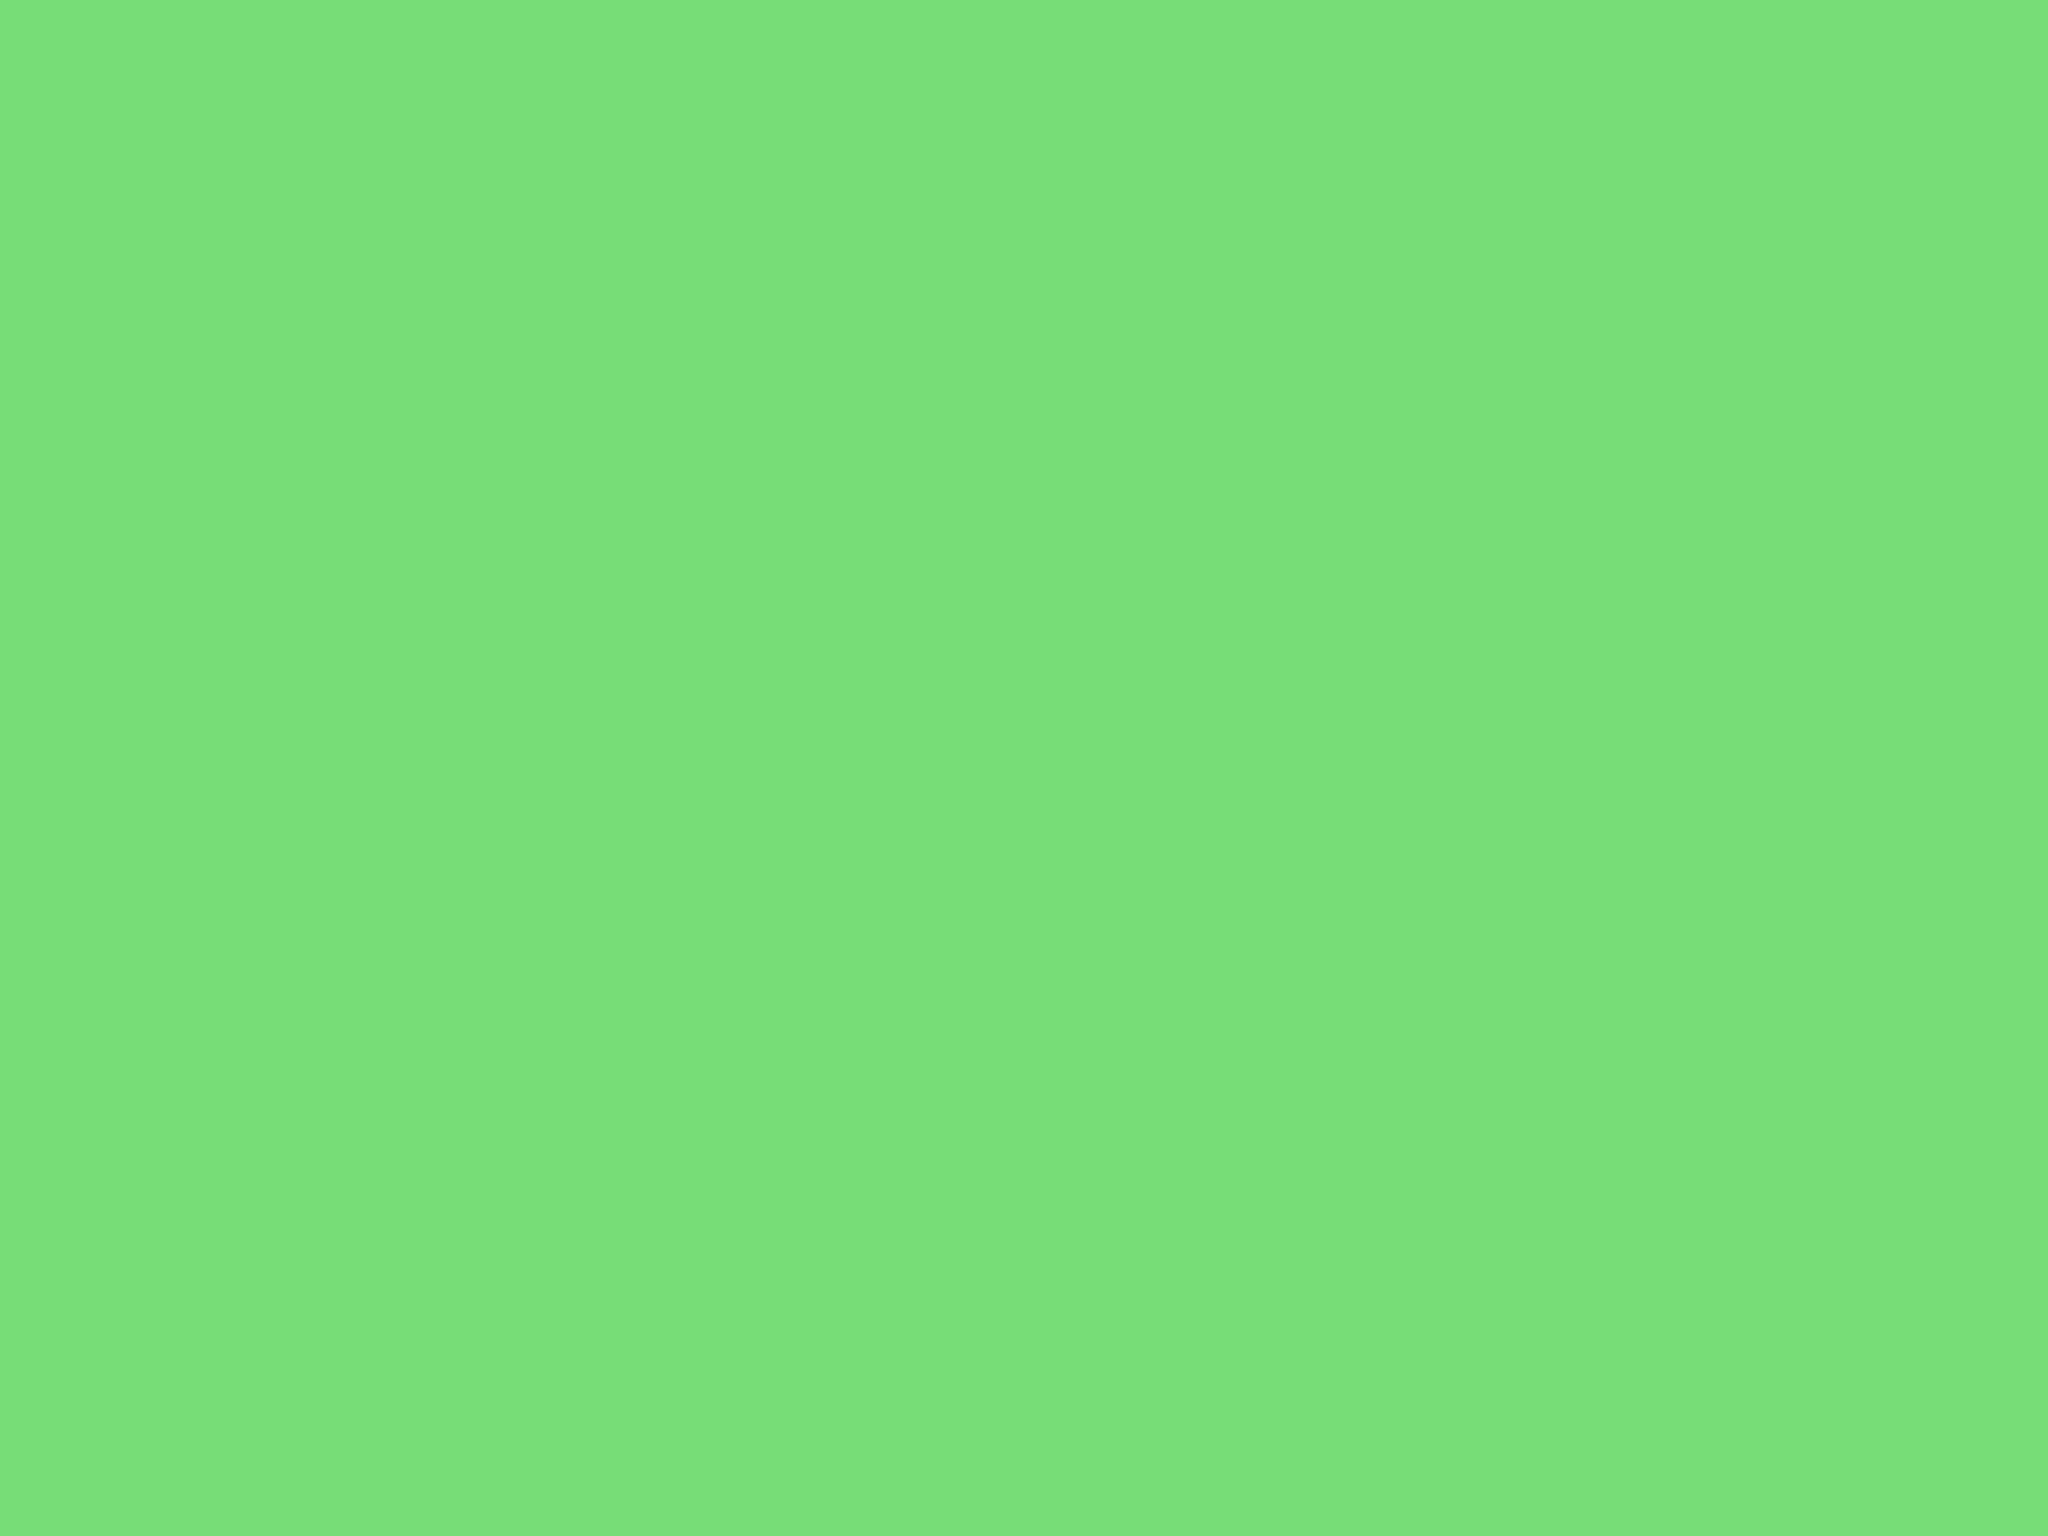 2048x1536 Pastel Green Solid Color Background